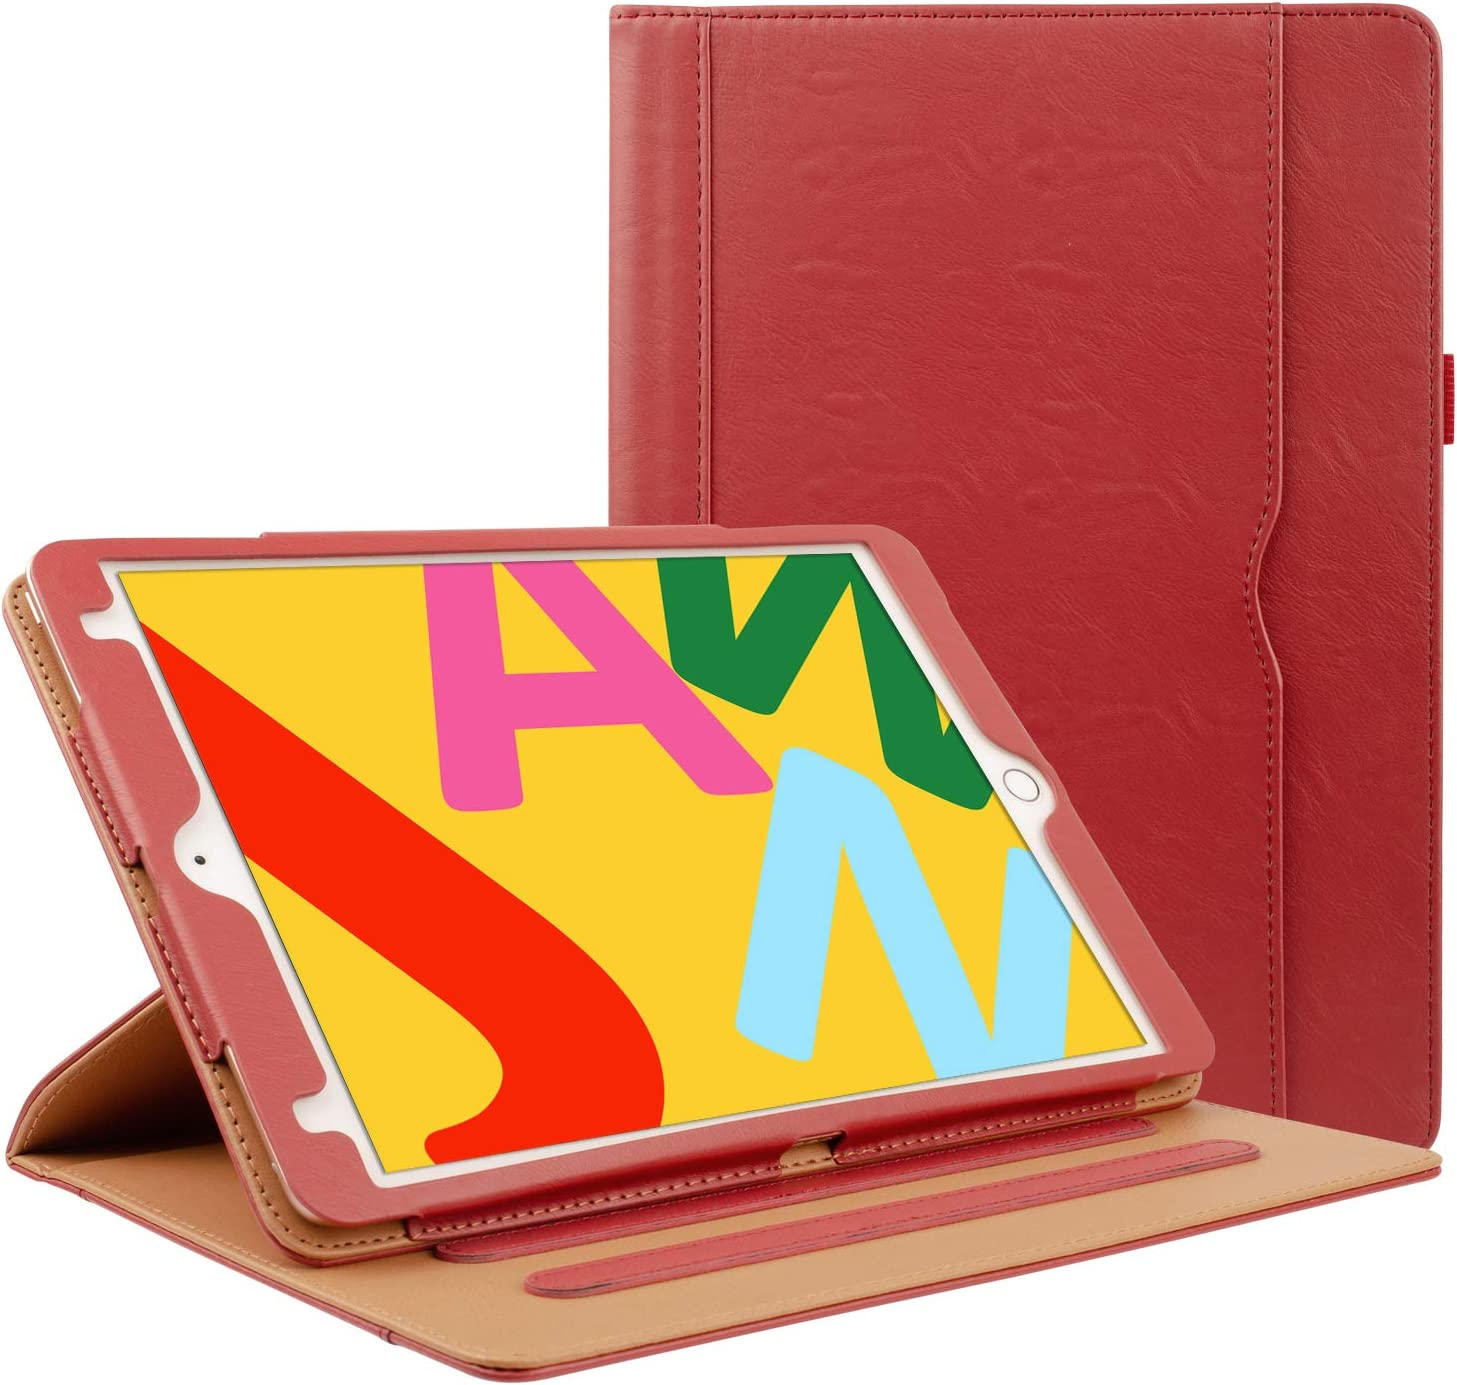 Grifobes Rotating Case for iPad 8th Generation / iPad 7th Generation,360 Degree Rotating Stand Smart Protective Case with Auto Wake/Sleep for iPad 10.2 inch 2020/2019,Red